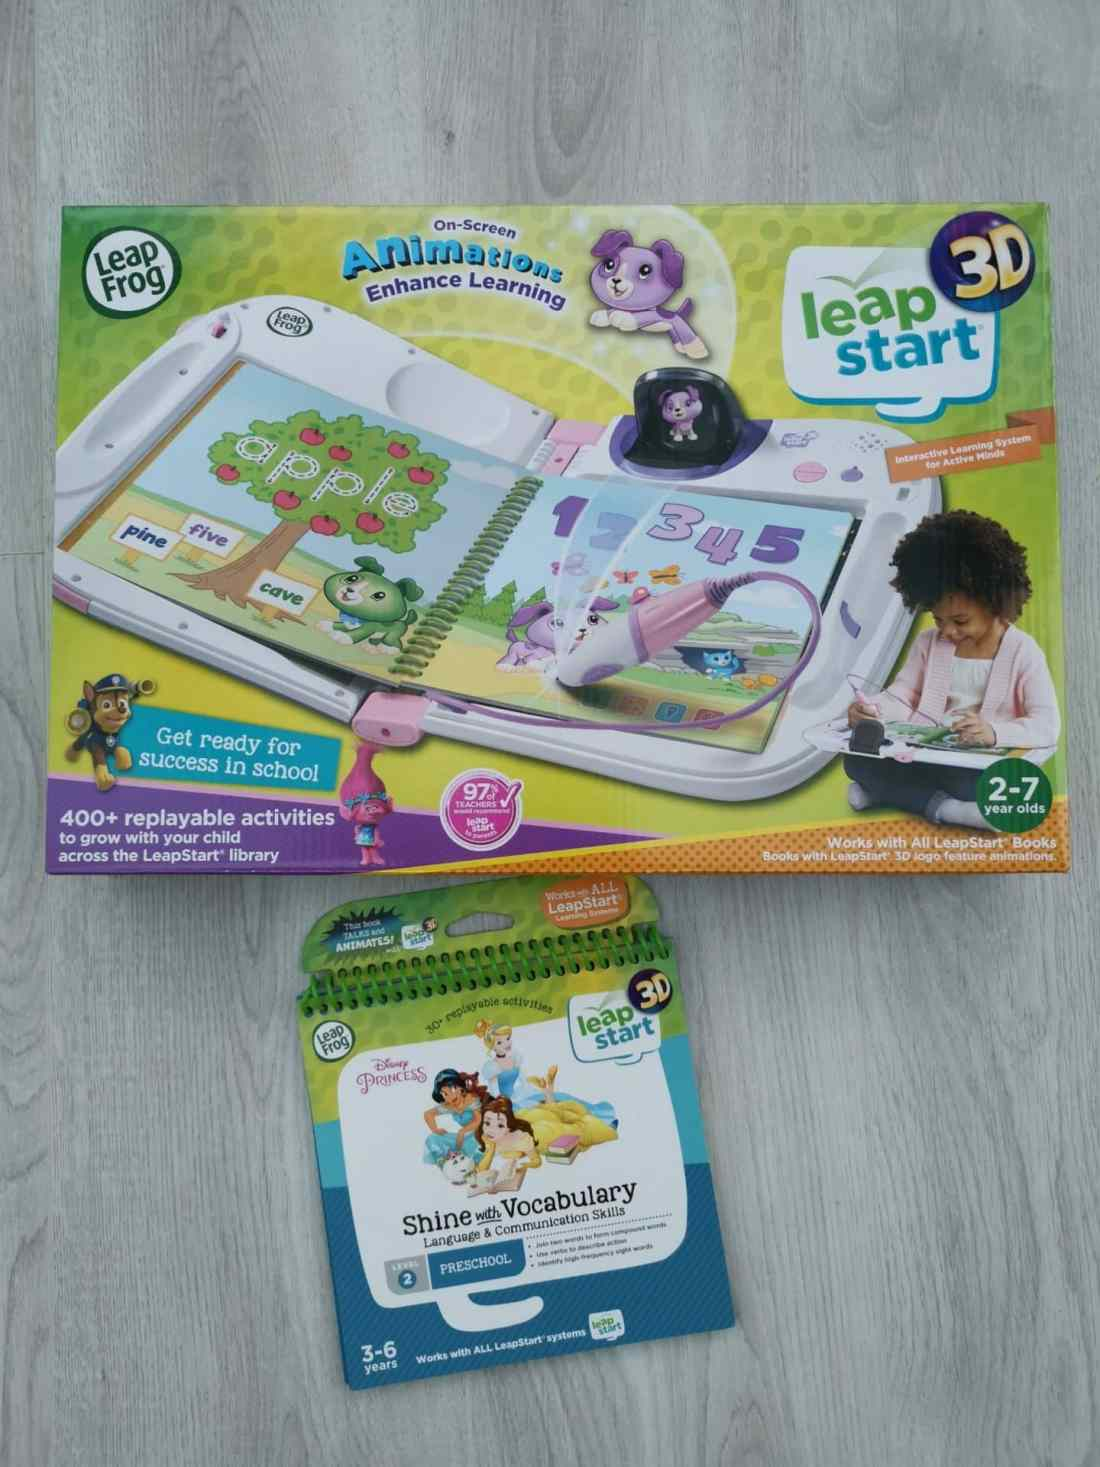 LeapStart 3D by LeapFrog and Disney Princess game